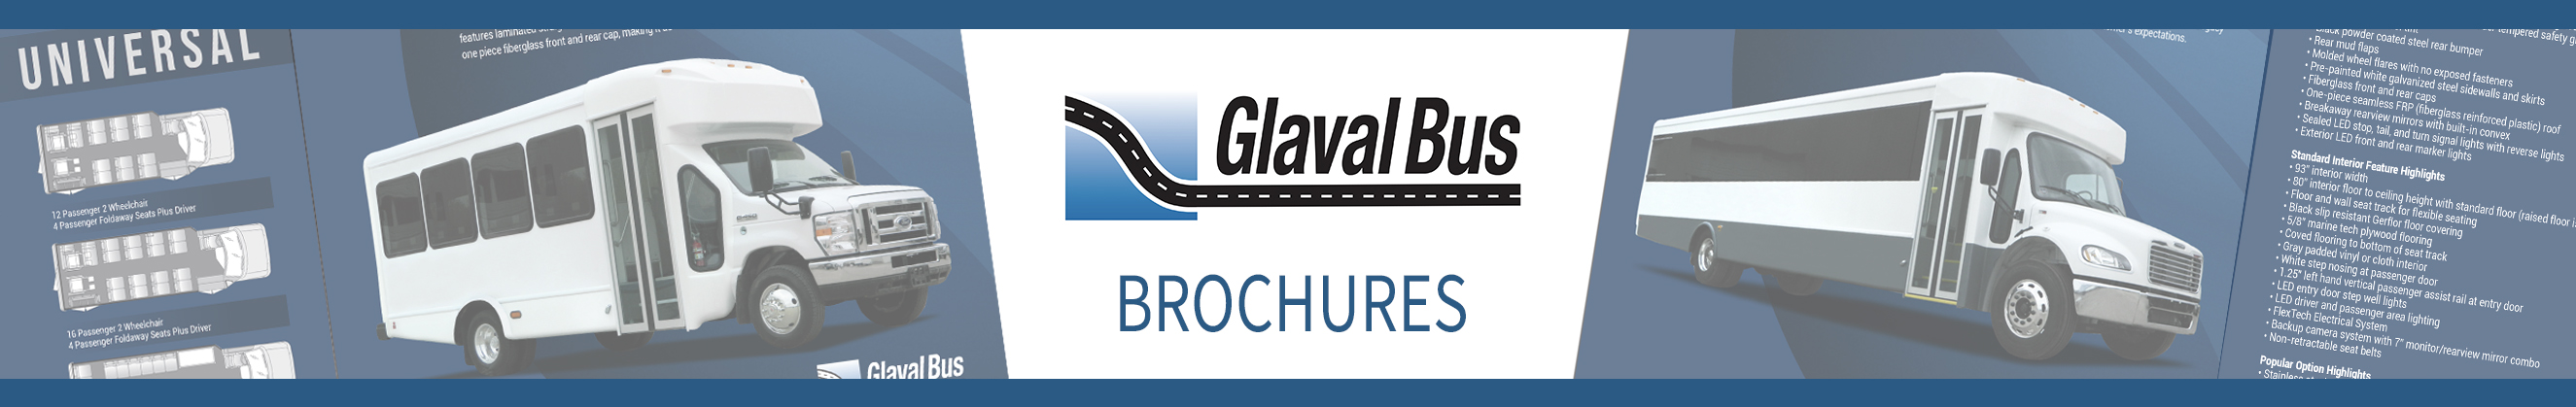 [SCHEMATICS_4HG]  Home | Glaval Bus - High Quality, Durable Small to Midsize Shuttle Buses. | Glaval Bus Wiring Diagram |  | www.glavalbus.com